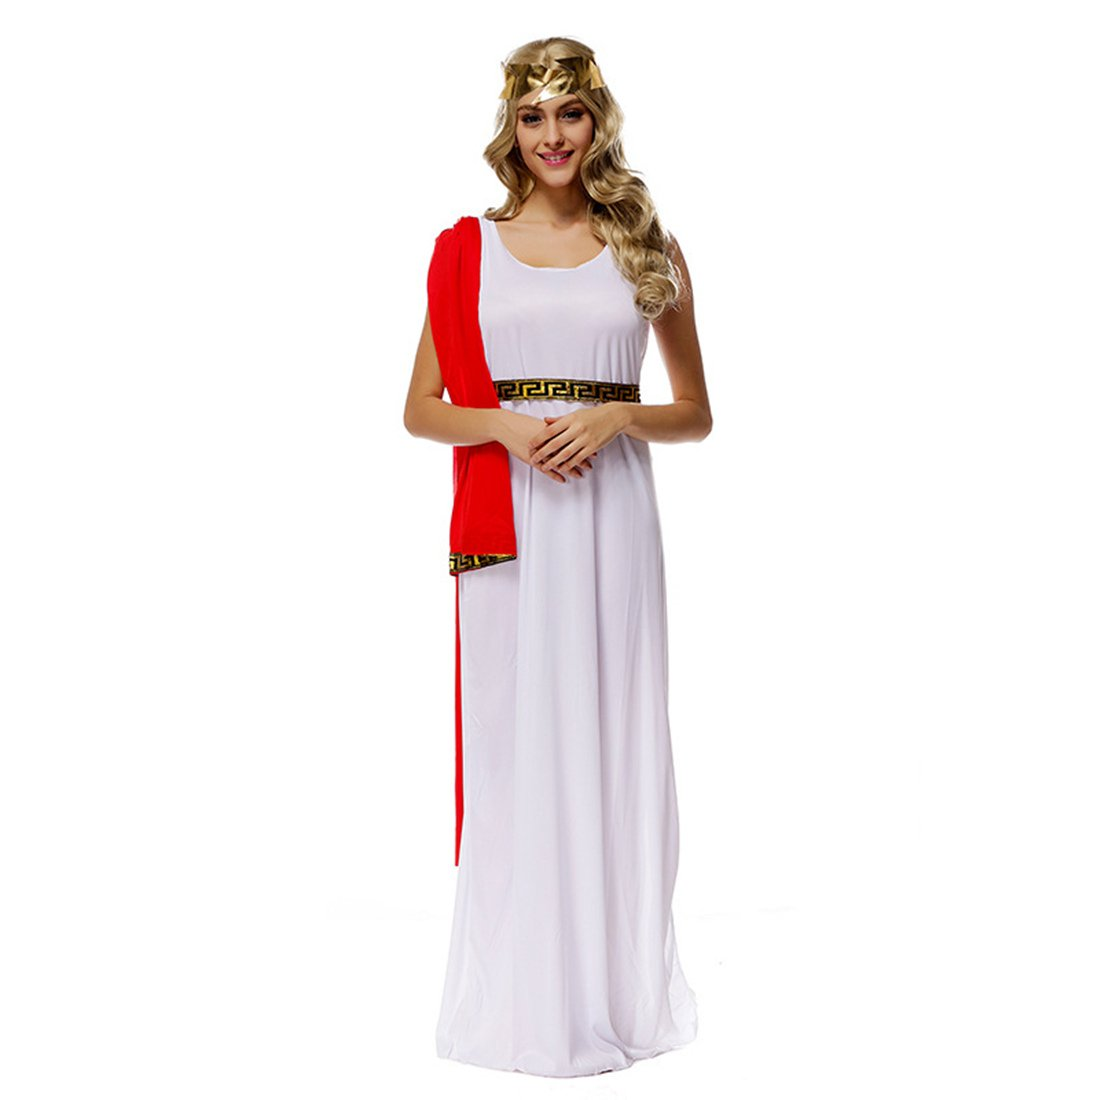 MV Zeus Goddess Athena White Costume Halloween Dress Uniform Cosplay